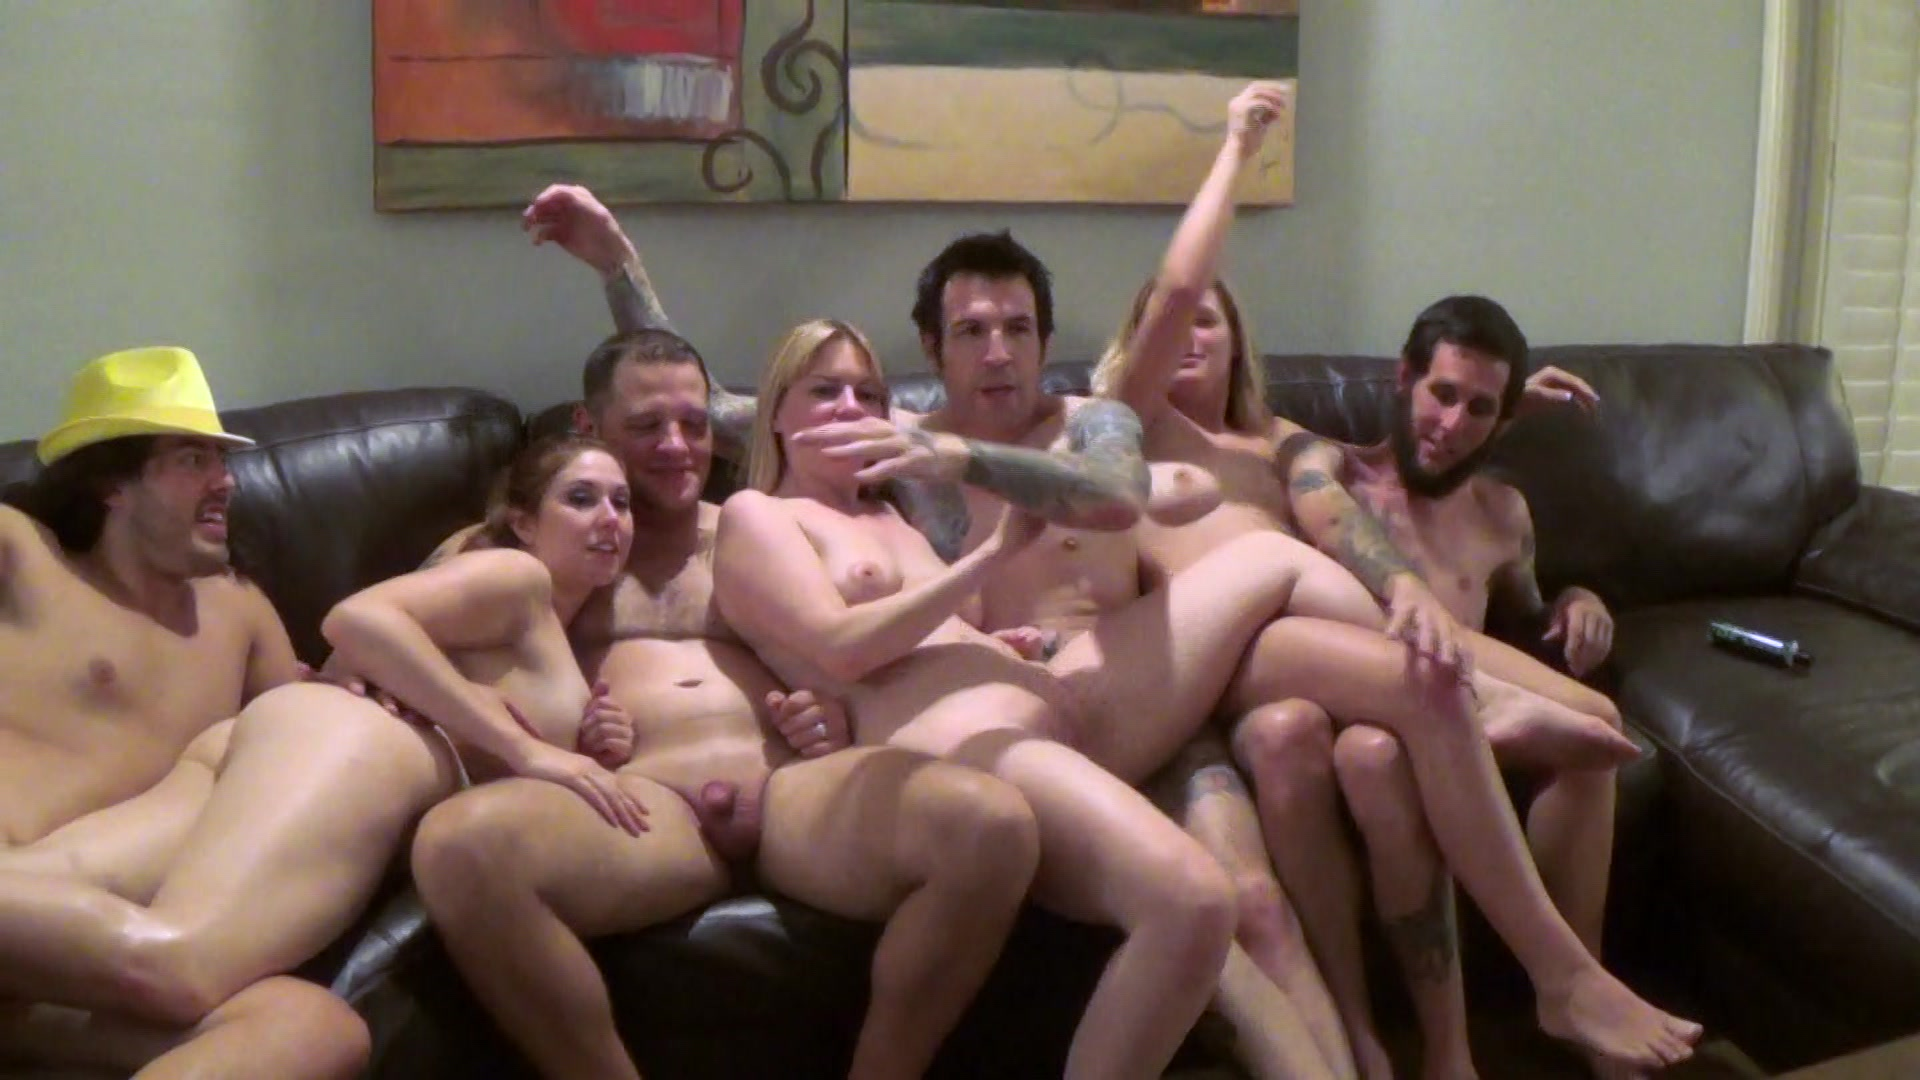 Real swingers porn videos-6459